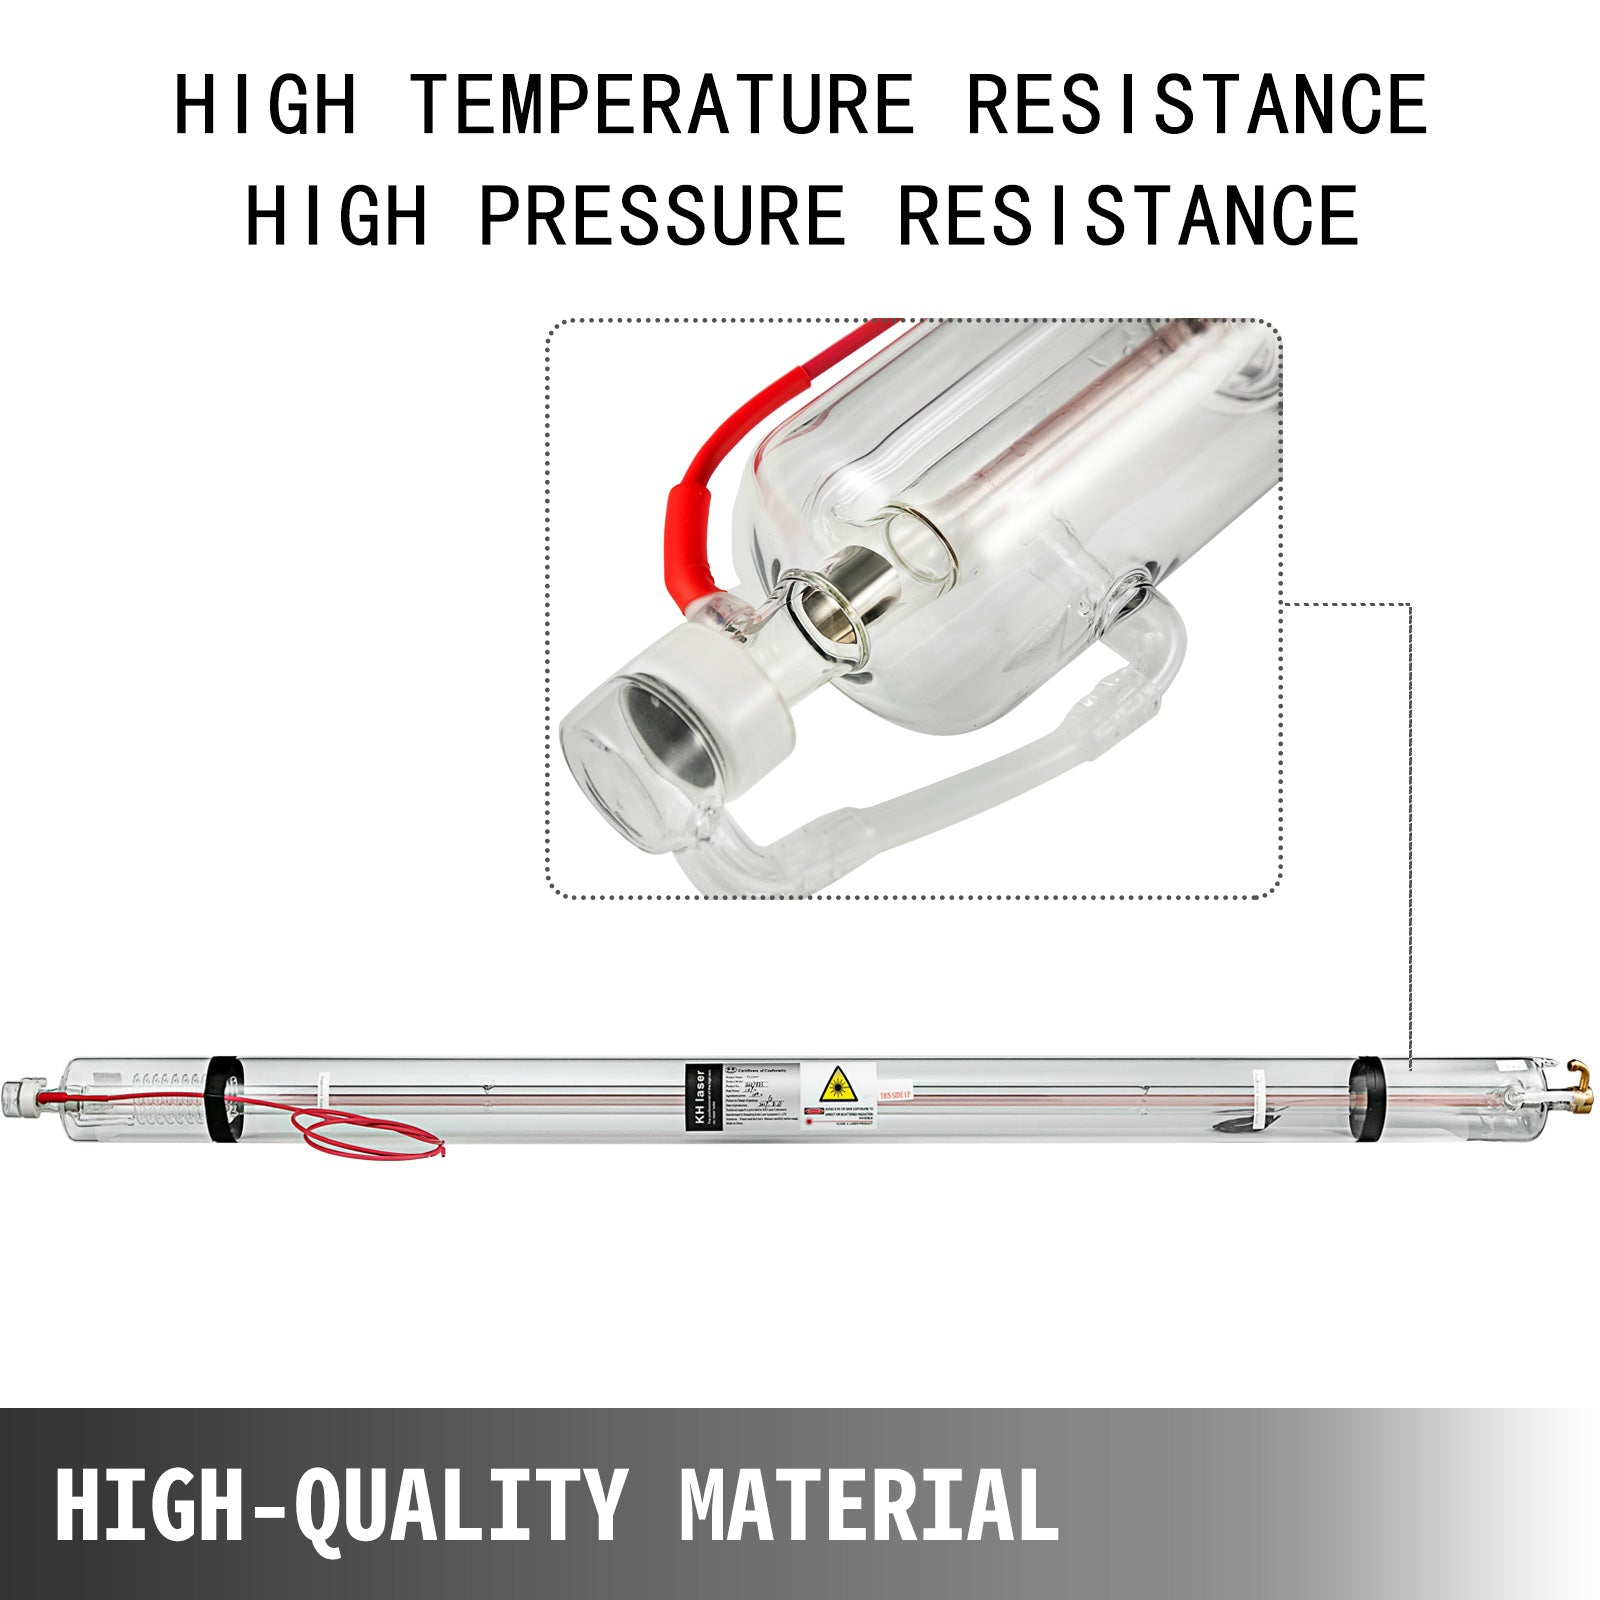 150w 1830mm Laser Tube For Co2 Laser Engraving Cutting Marking Machine